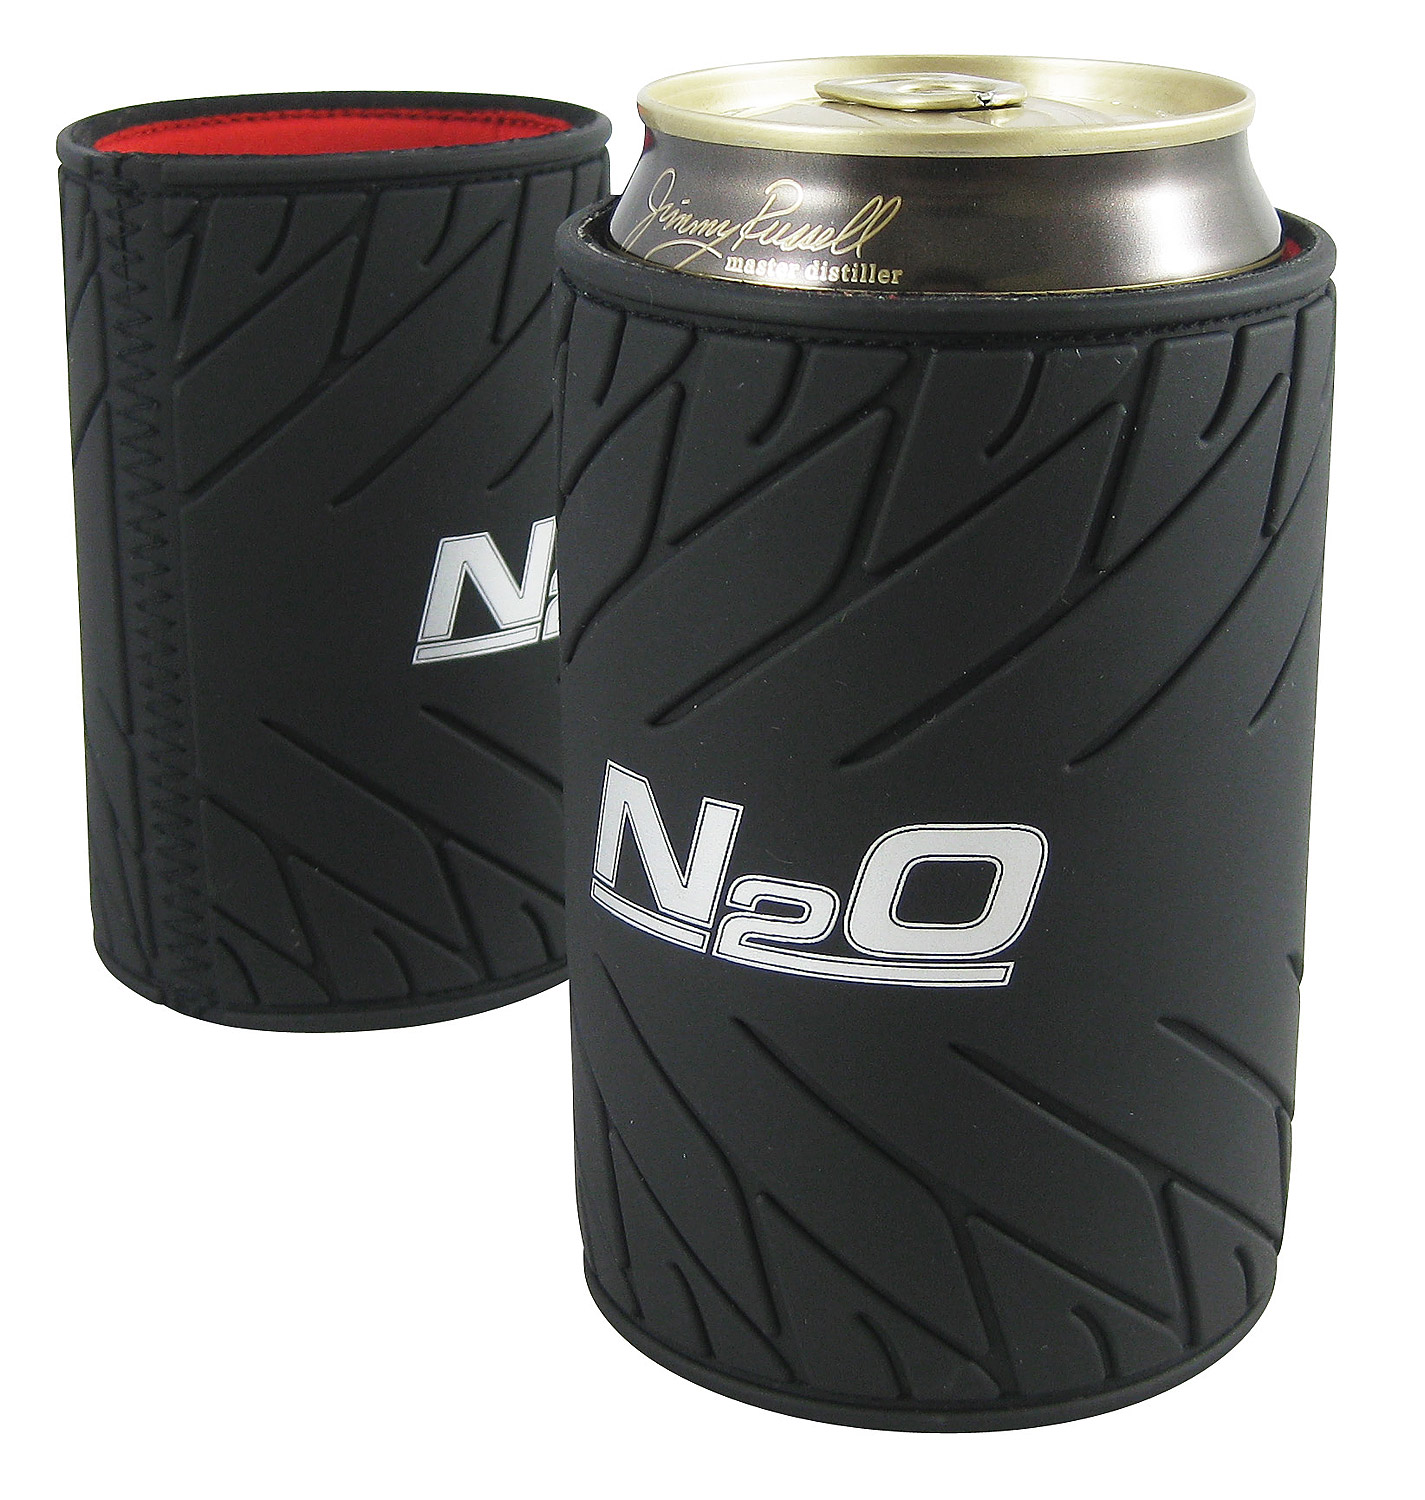 Tyre Tread Stubby Holder